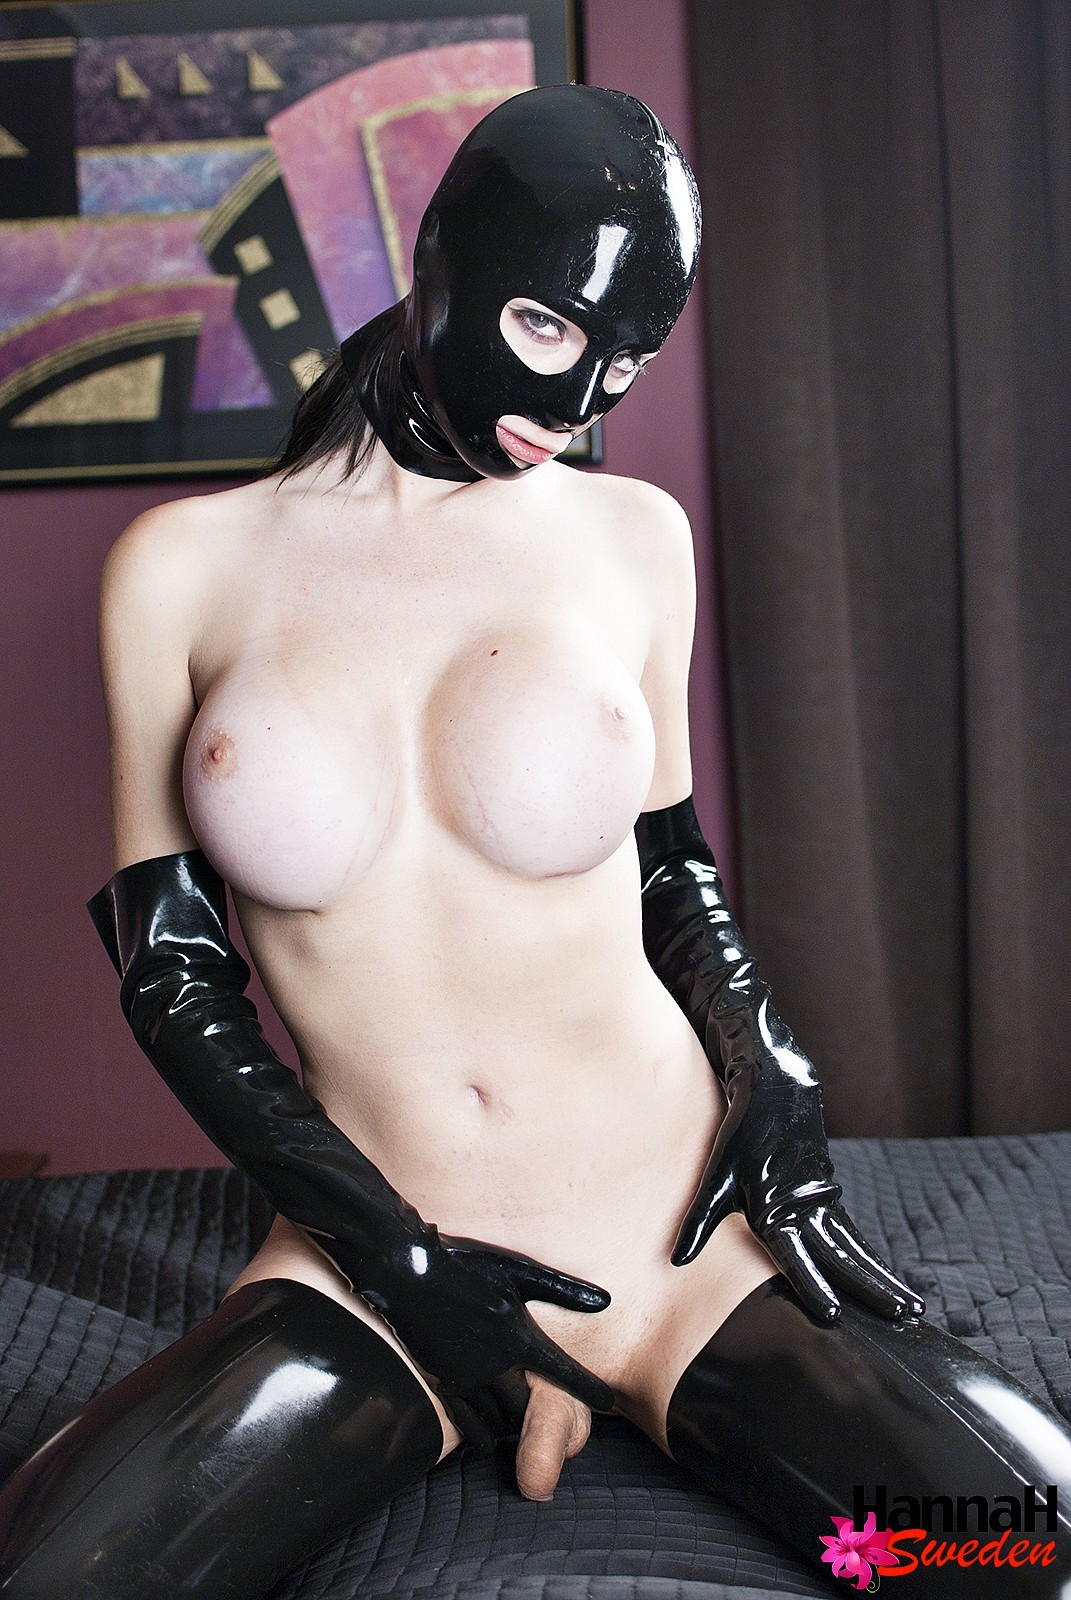 Enormous Boobs Submissive T-Girl In Black Hood